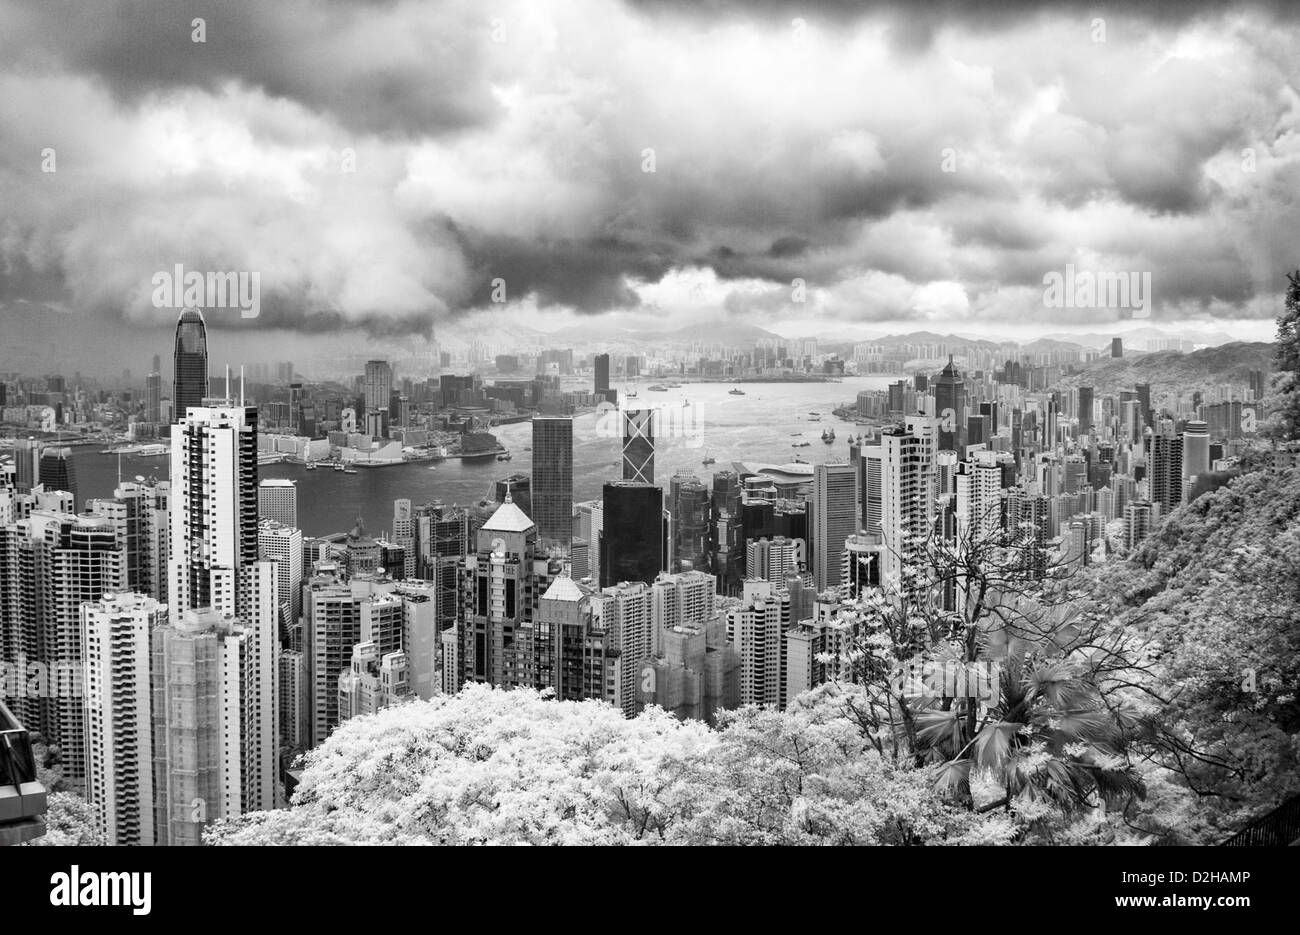 Victoria Harbour, Hong Kong, taken from The Peak, Hong Kong Island in Infra Red - Stock Image